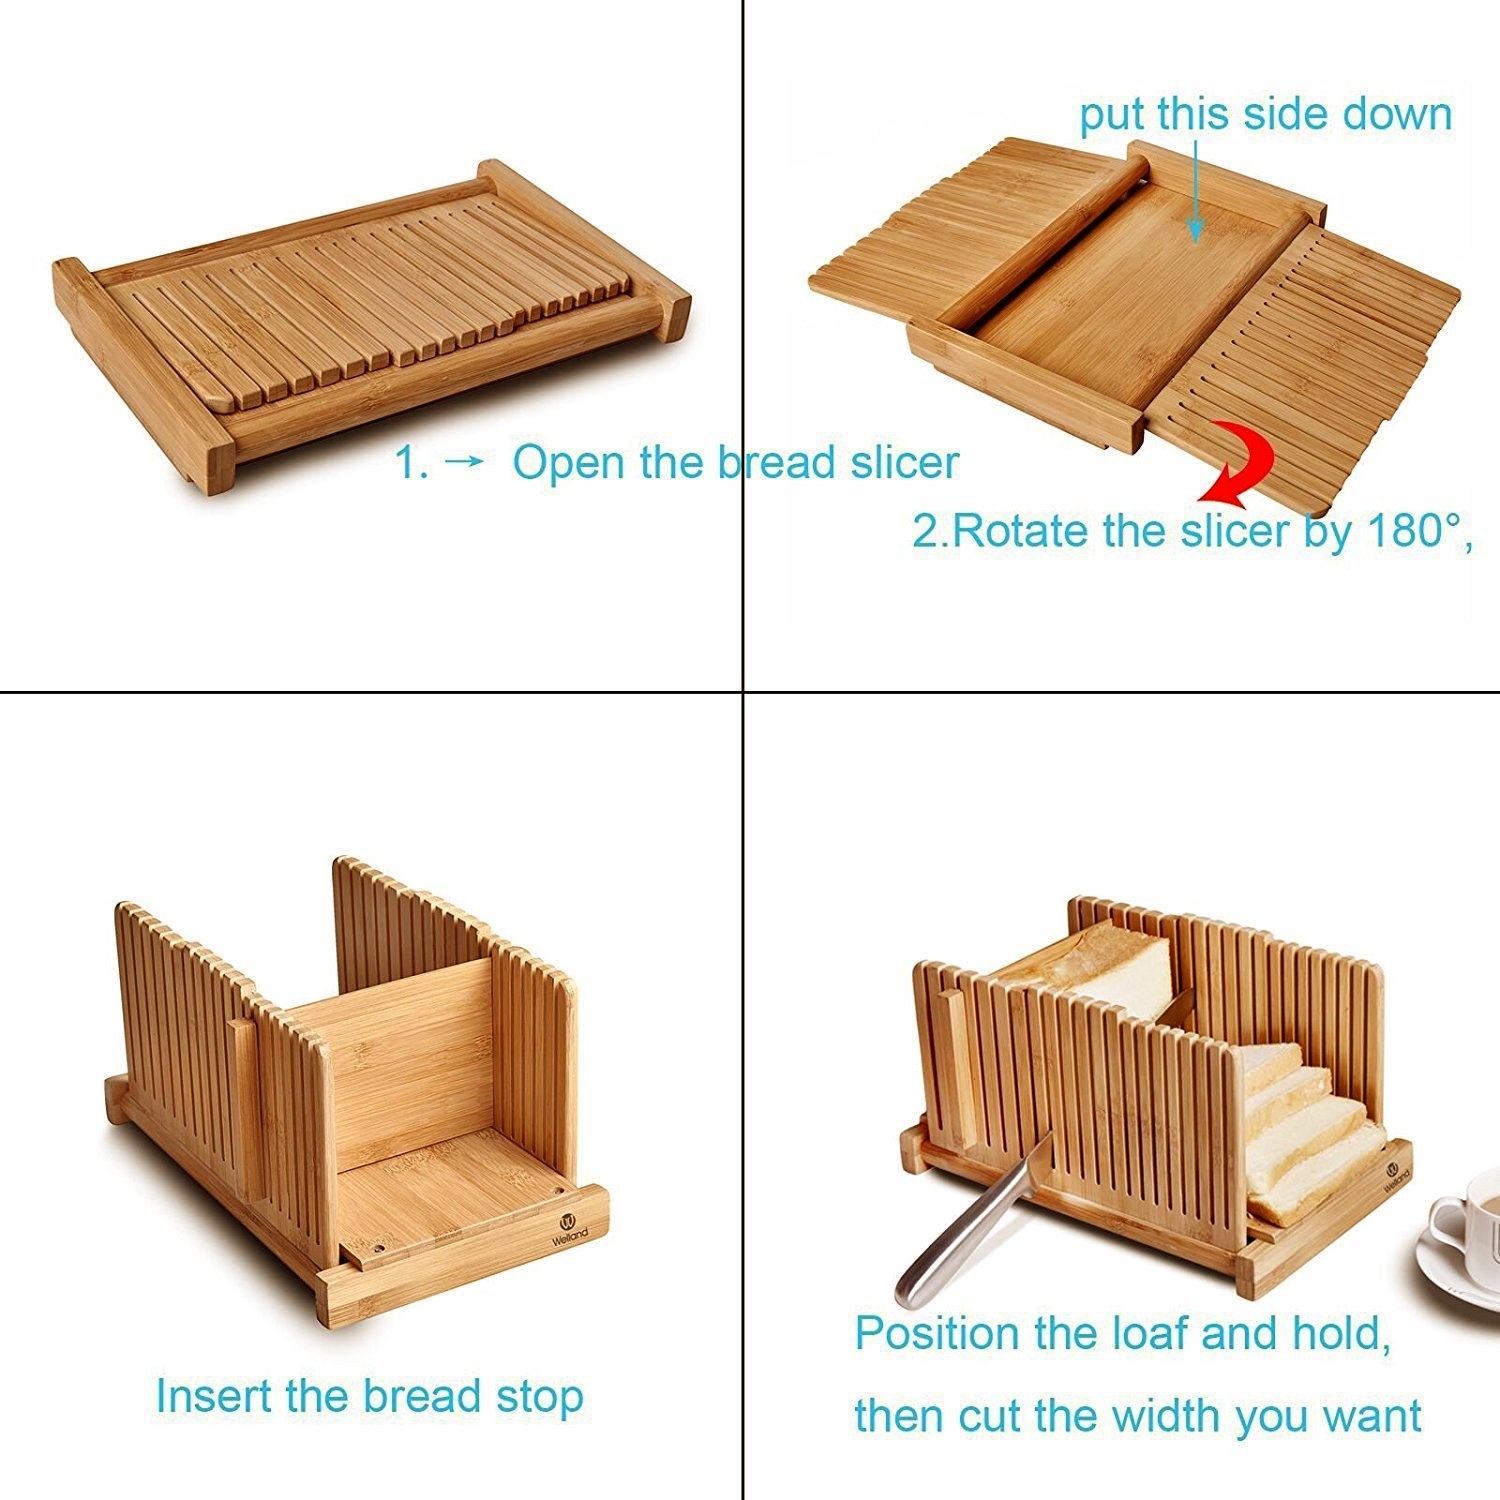 WELLAND Bamboo Bread Slicer Guide, Foldable Wooden Toast Cutting Guide with 3 Slicing Sizes for Homemade Breads, Loaf Cakes by WELLAND (Image #3)